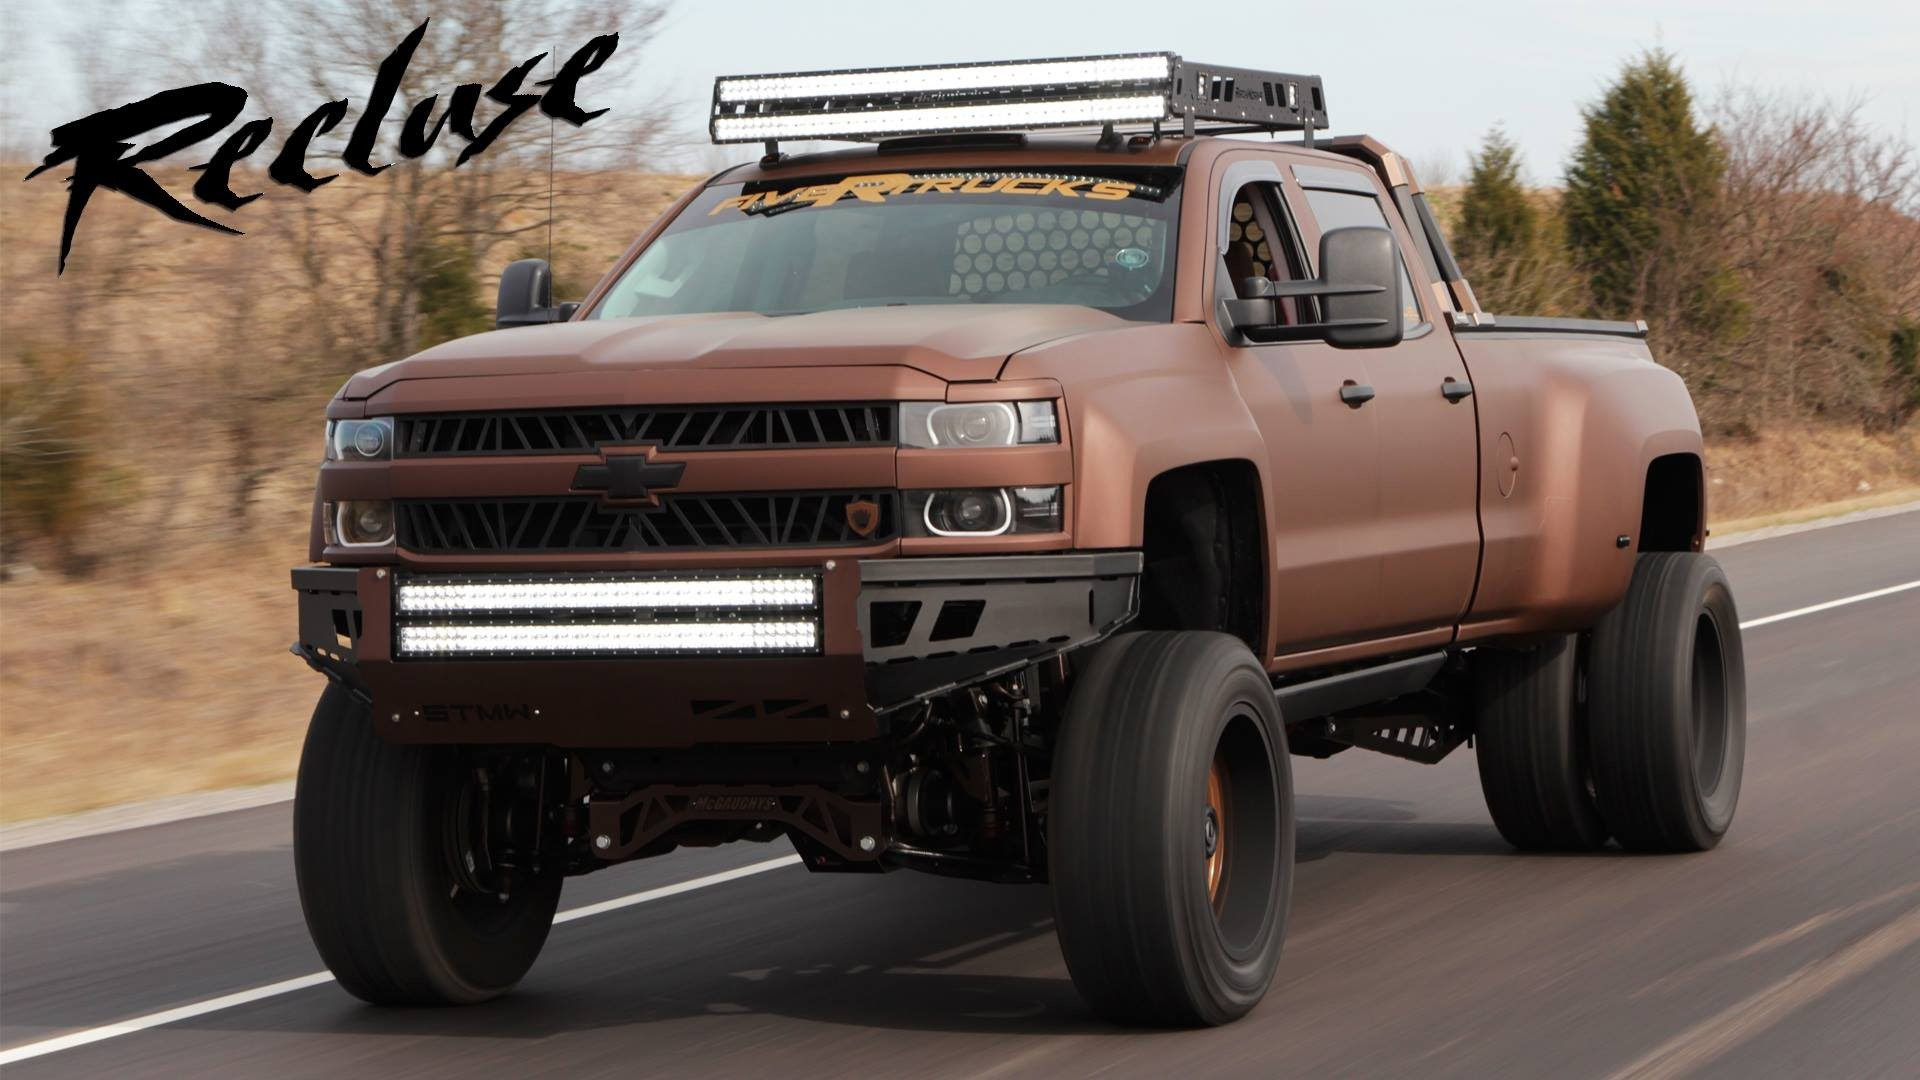 1920x1080 Lifted Duramax Dually With Stacks Dually duramax | Cars & Motorcycles that  I love | Pinterest | Chevy, Cars and GMC Trucks